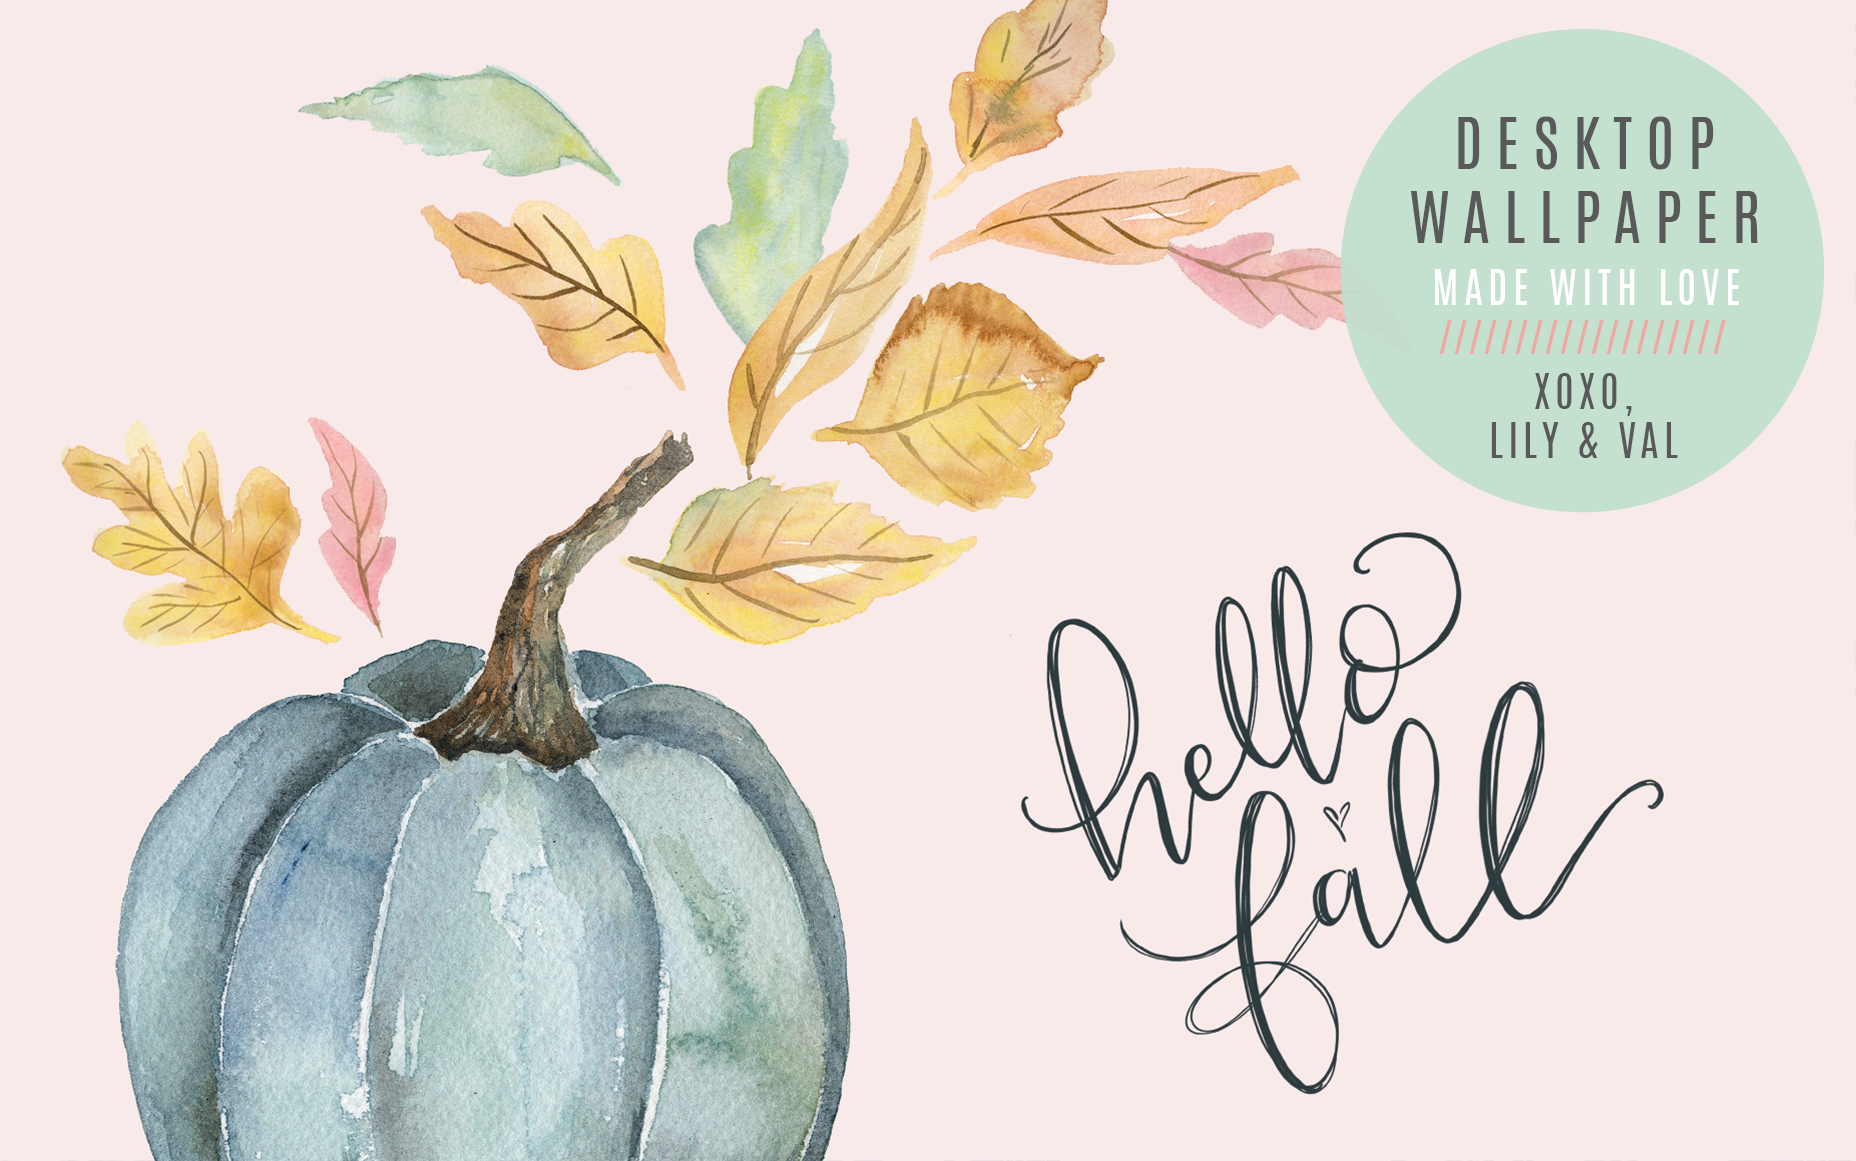 September S Hello Fall Free Desktop Wallpaper Download Lily Val Living Desktop Wallpaper Fall Watercolor Desktop Wallpaper Fall Desktop Backgrounds